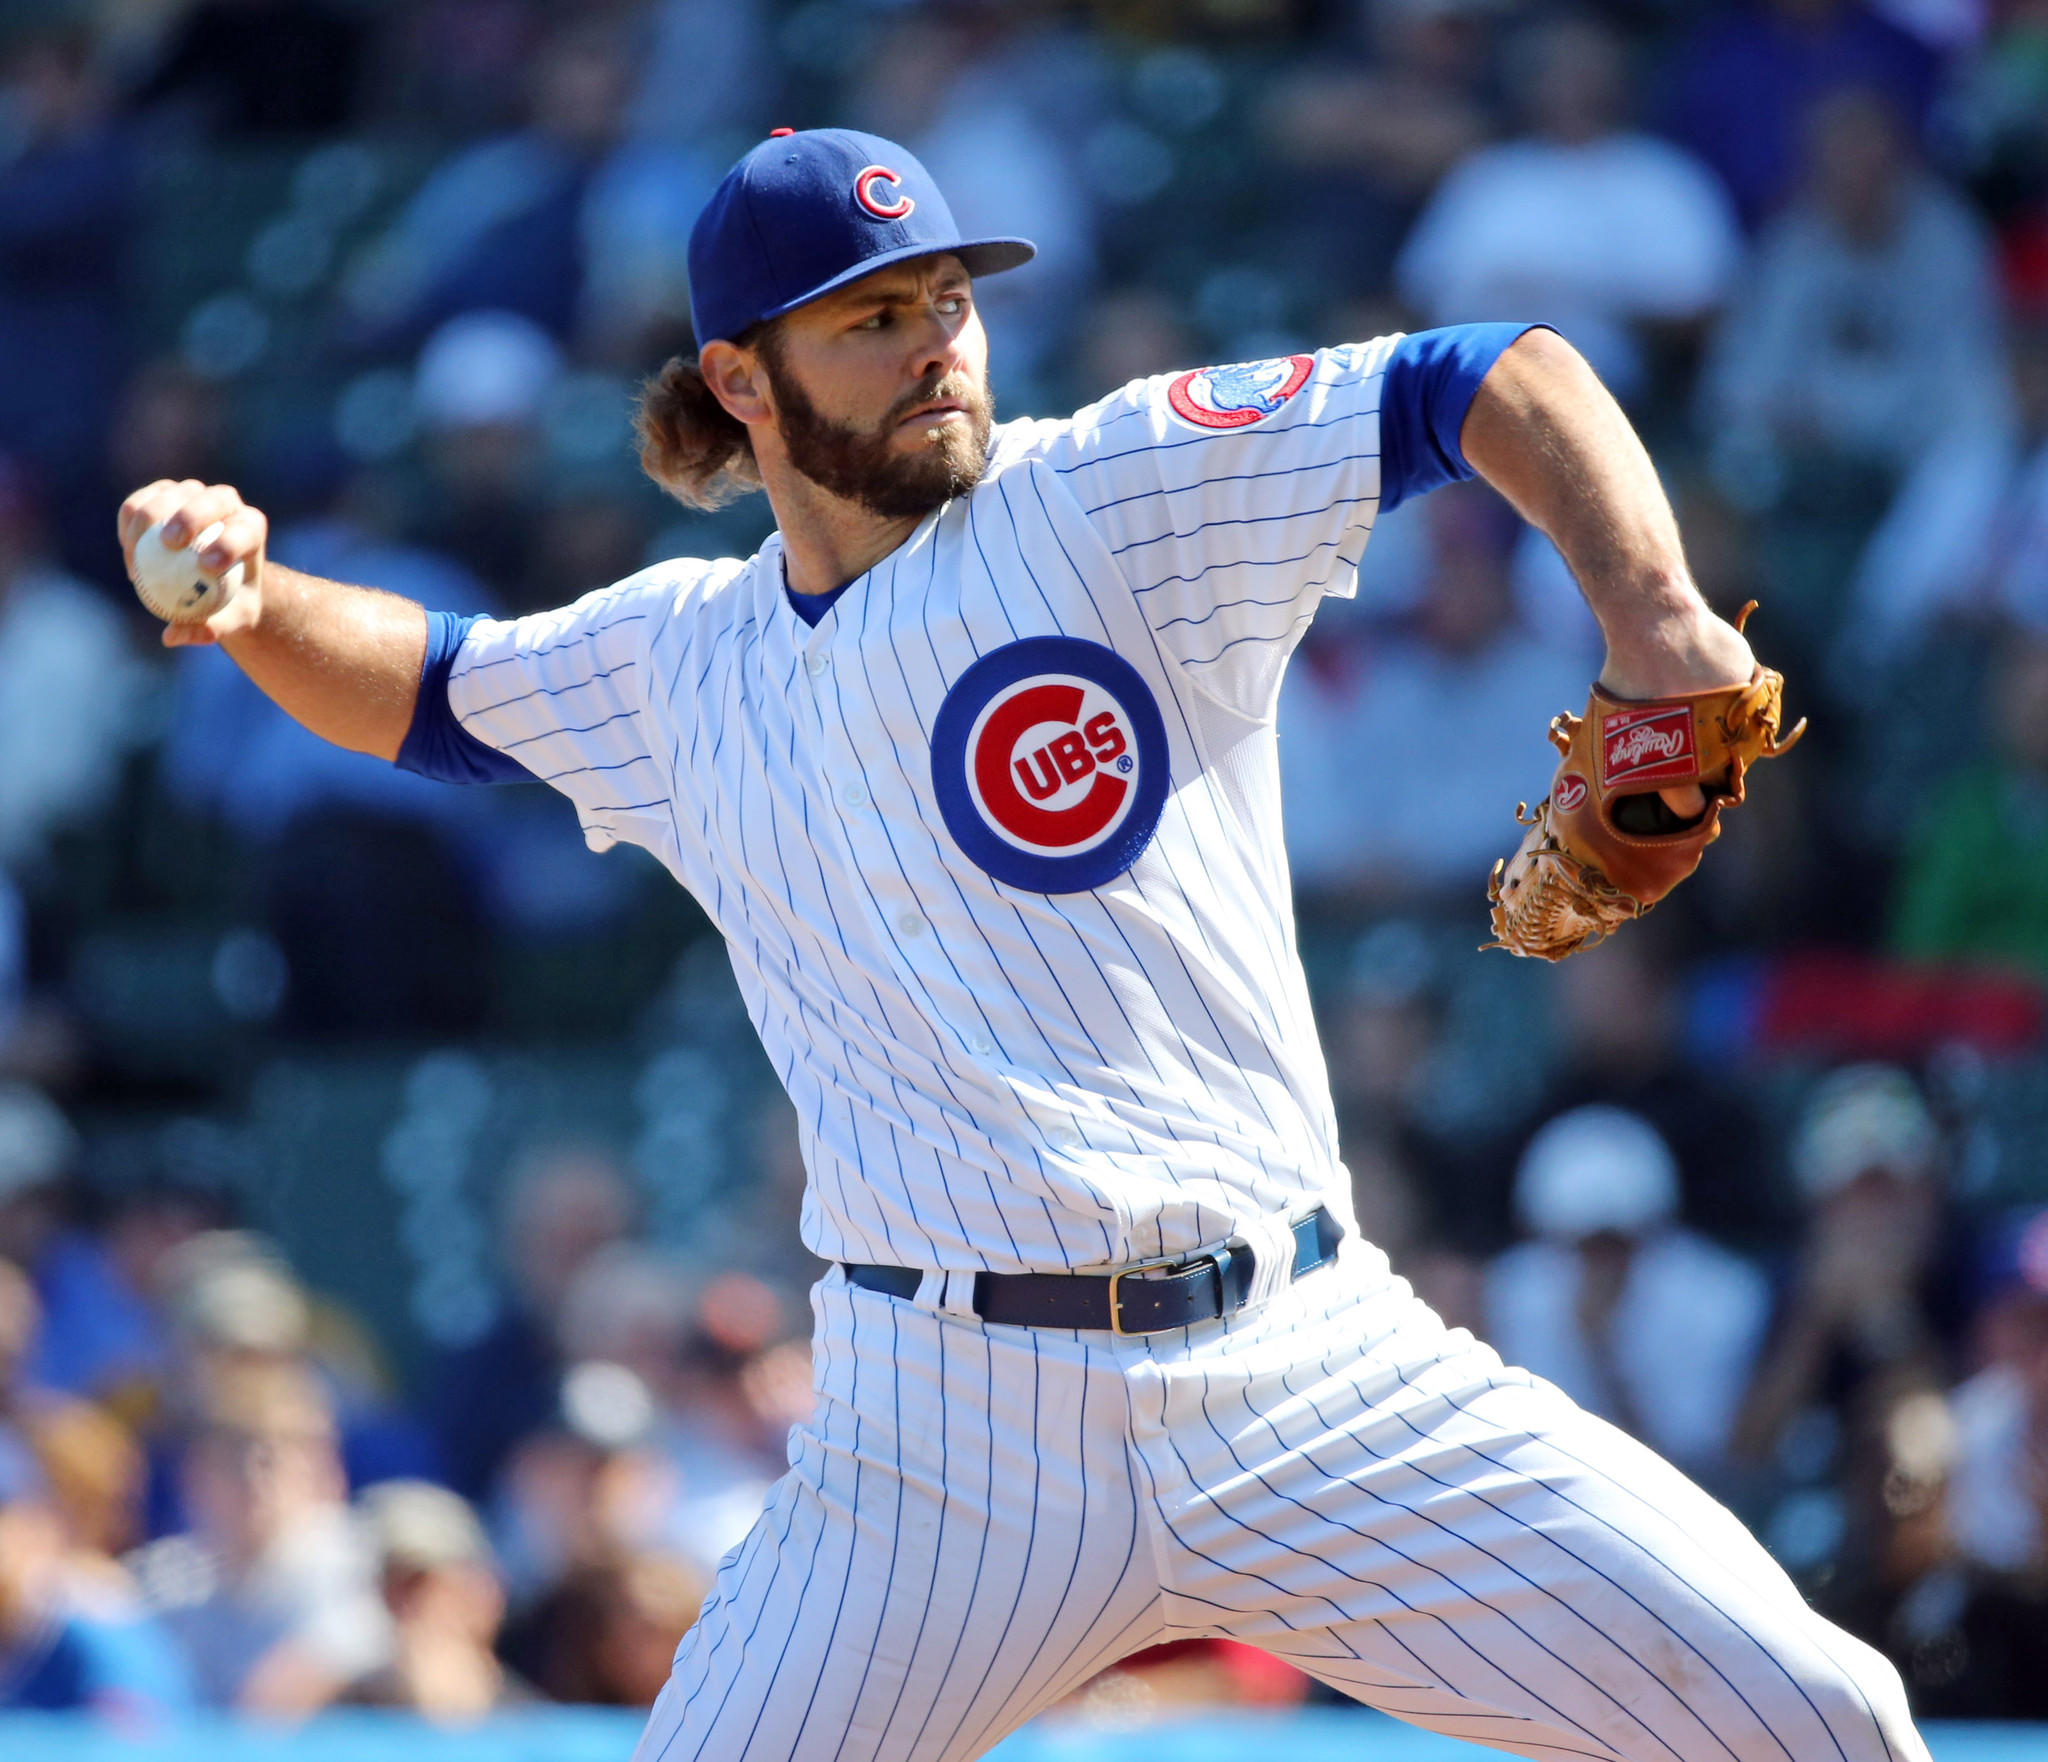 Cubs pitcher Jake Arrieta delivers to the Pirates in the first inning on Sept. 25, 2013.